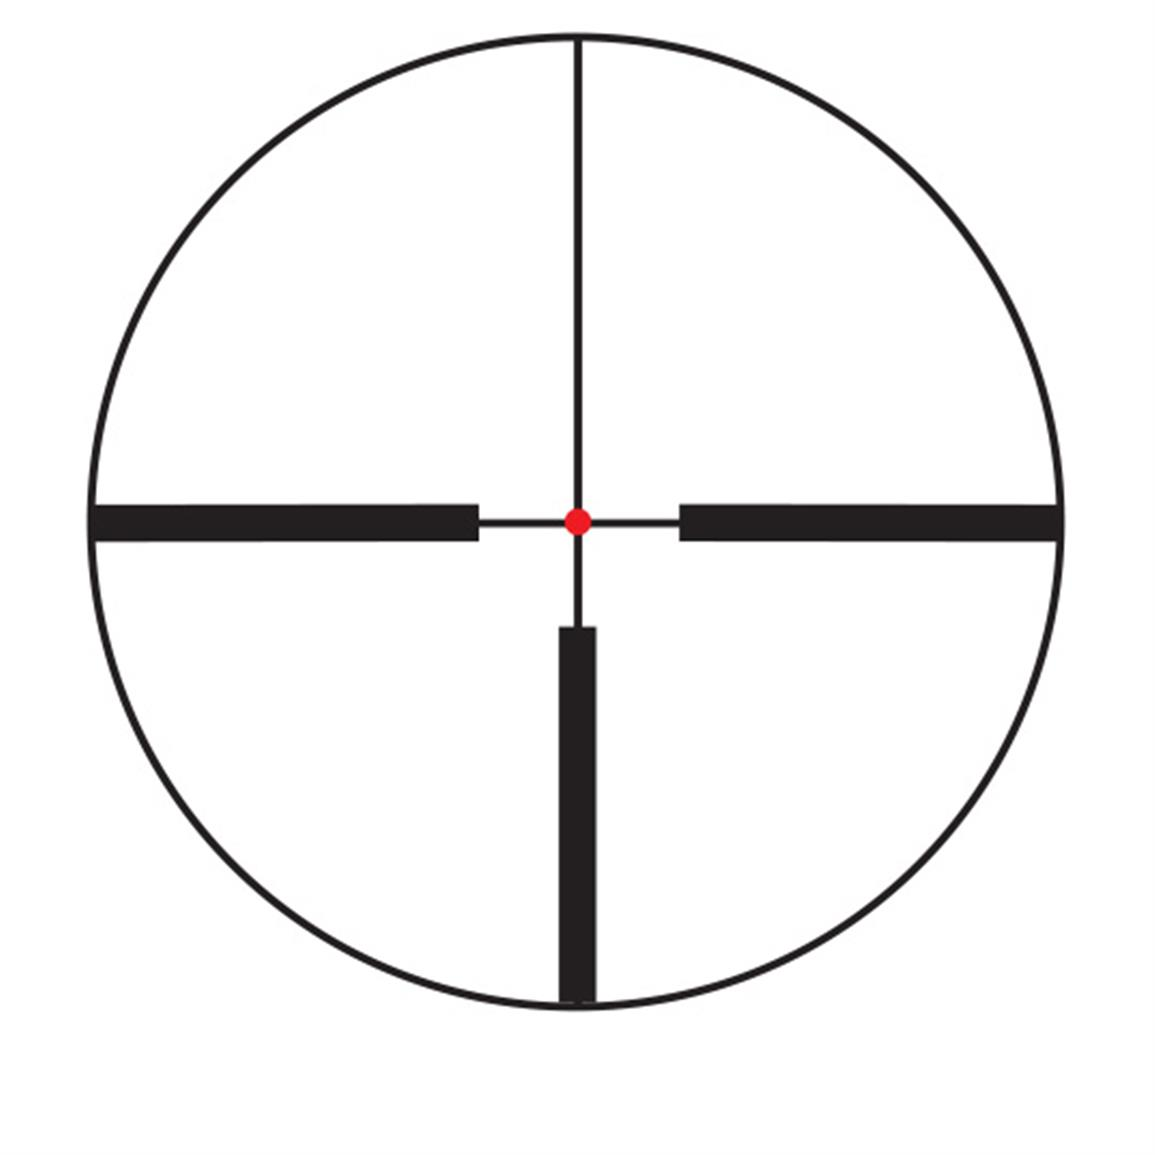 4A IR Reticle